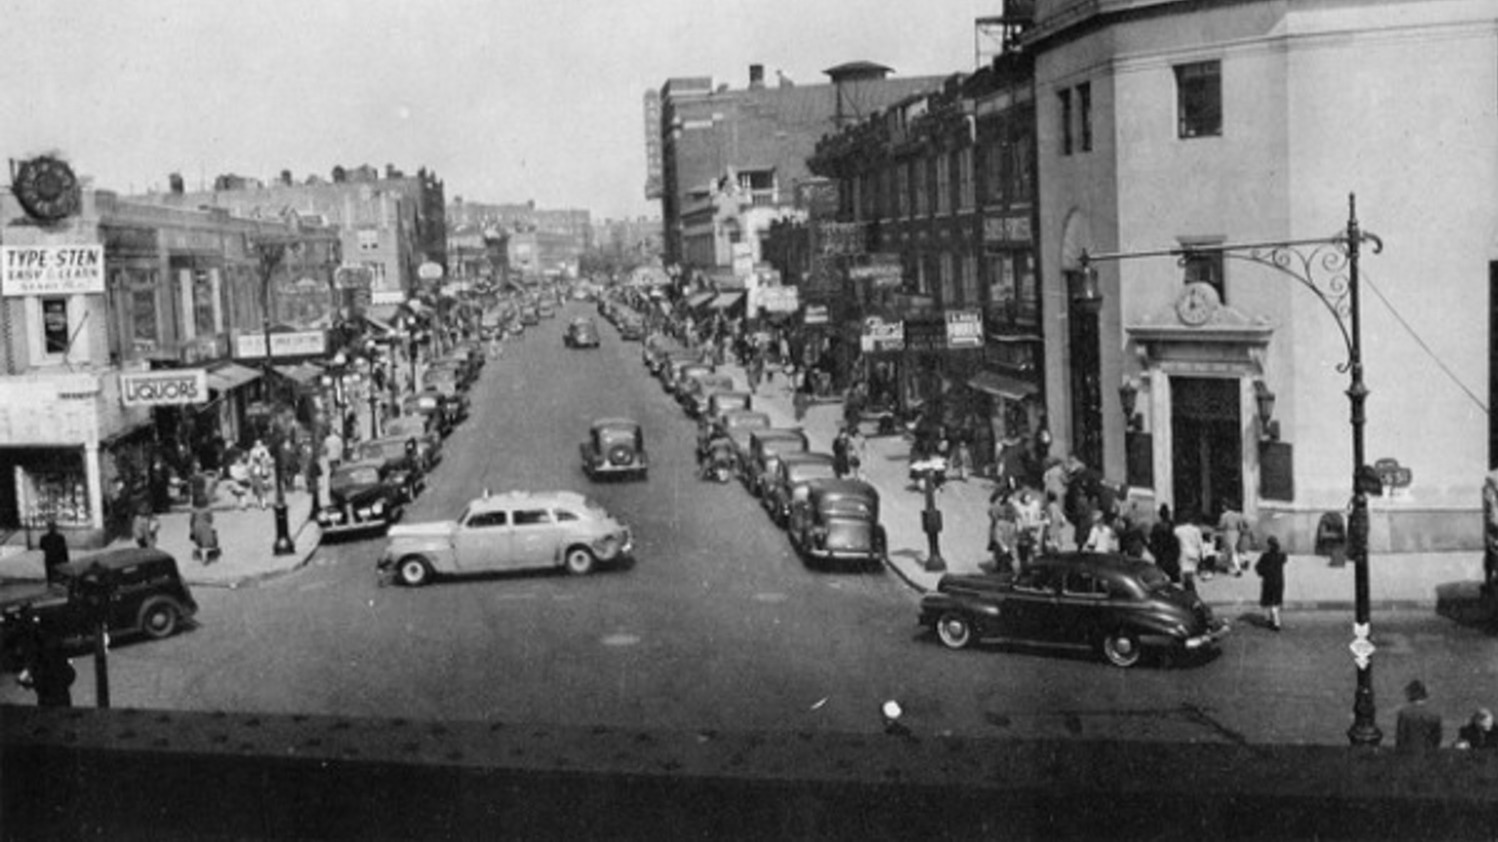 A view of Kings Highway in Brooklyn, circa 1950s, above. Adele Perlow had opened a high-end women's wear shop there in 1942 with her sister Etta.